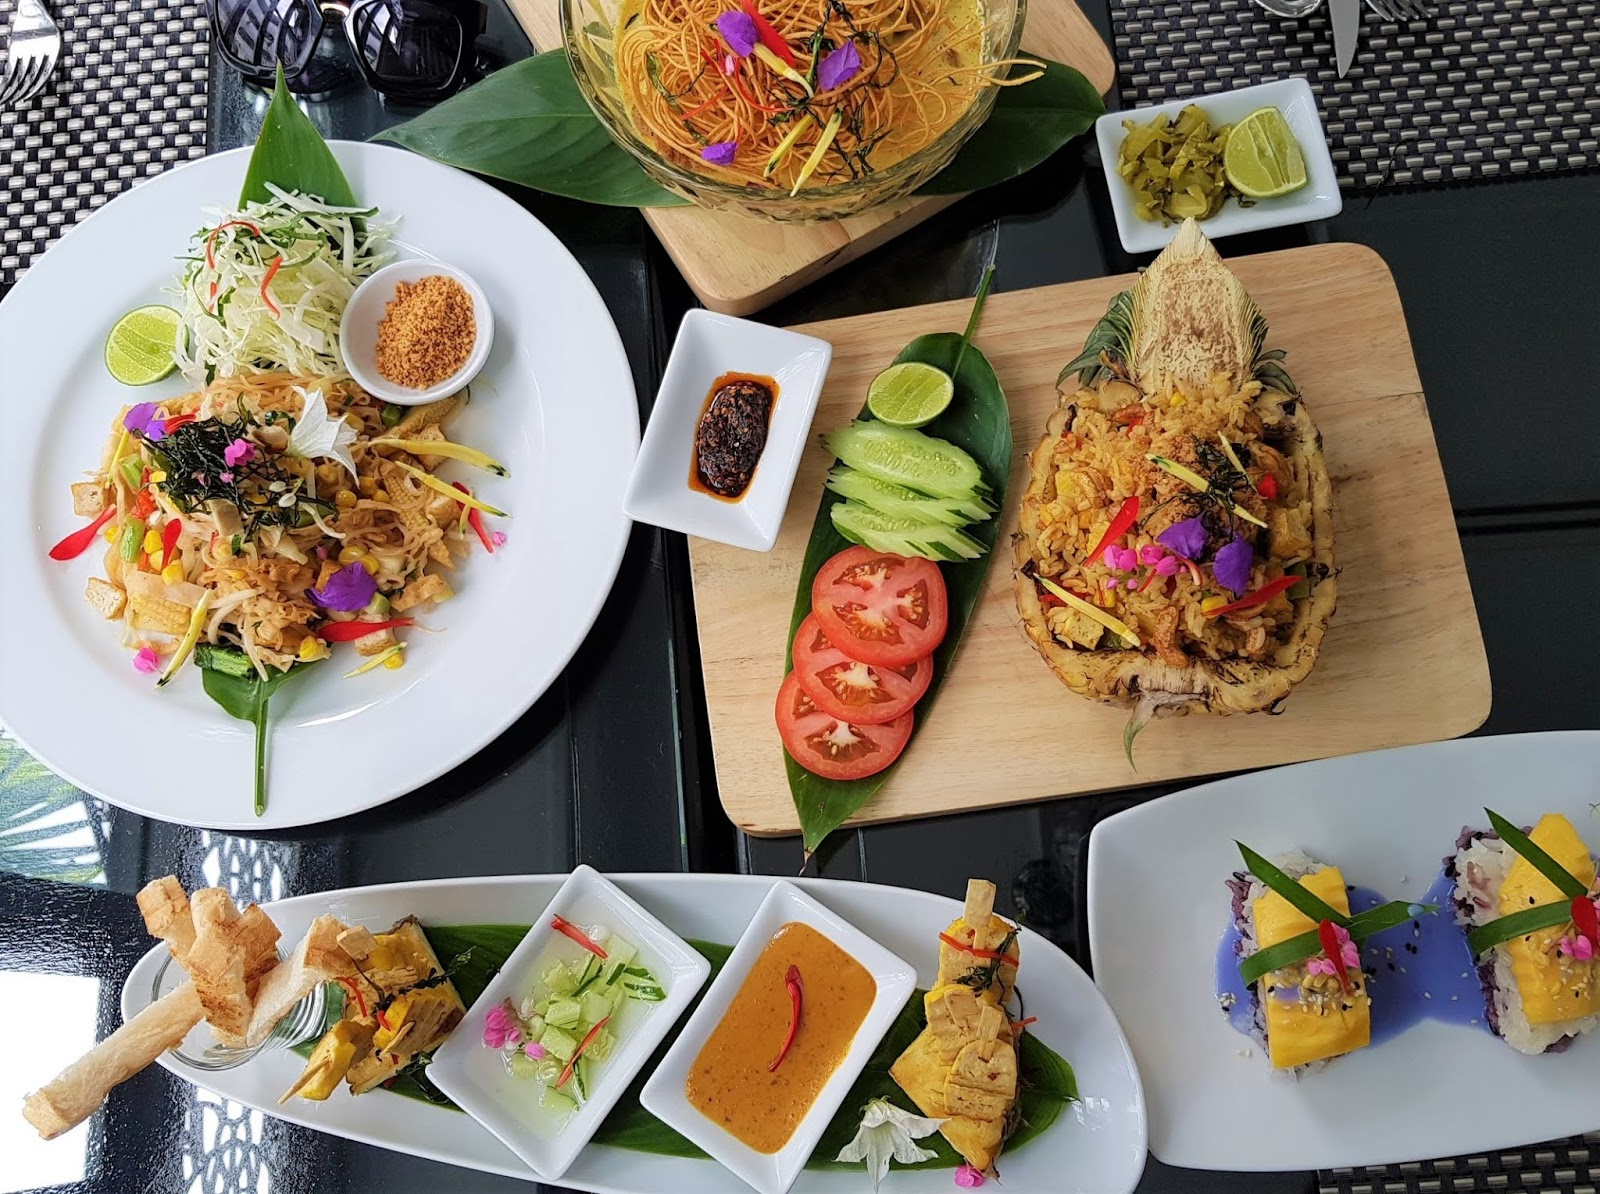 Vegan food in Chiang Mai - Vegan travel guide - Responsible traveler